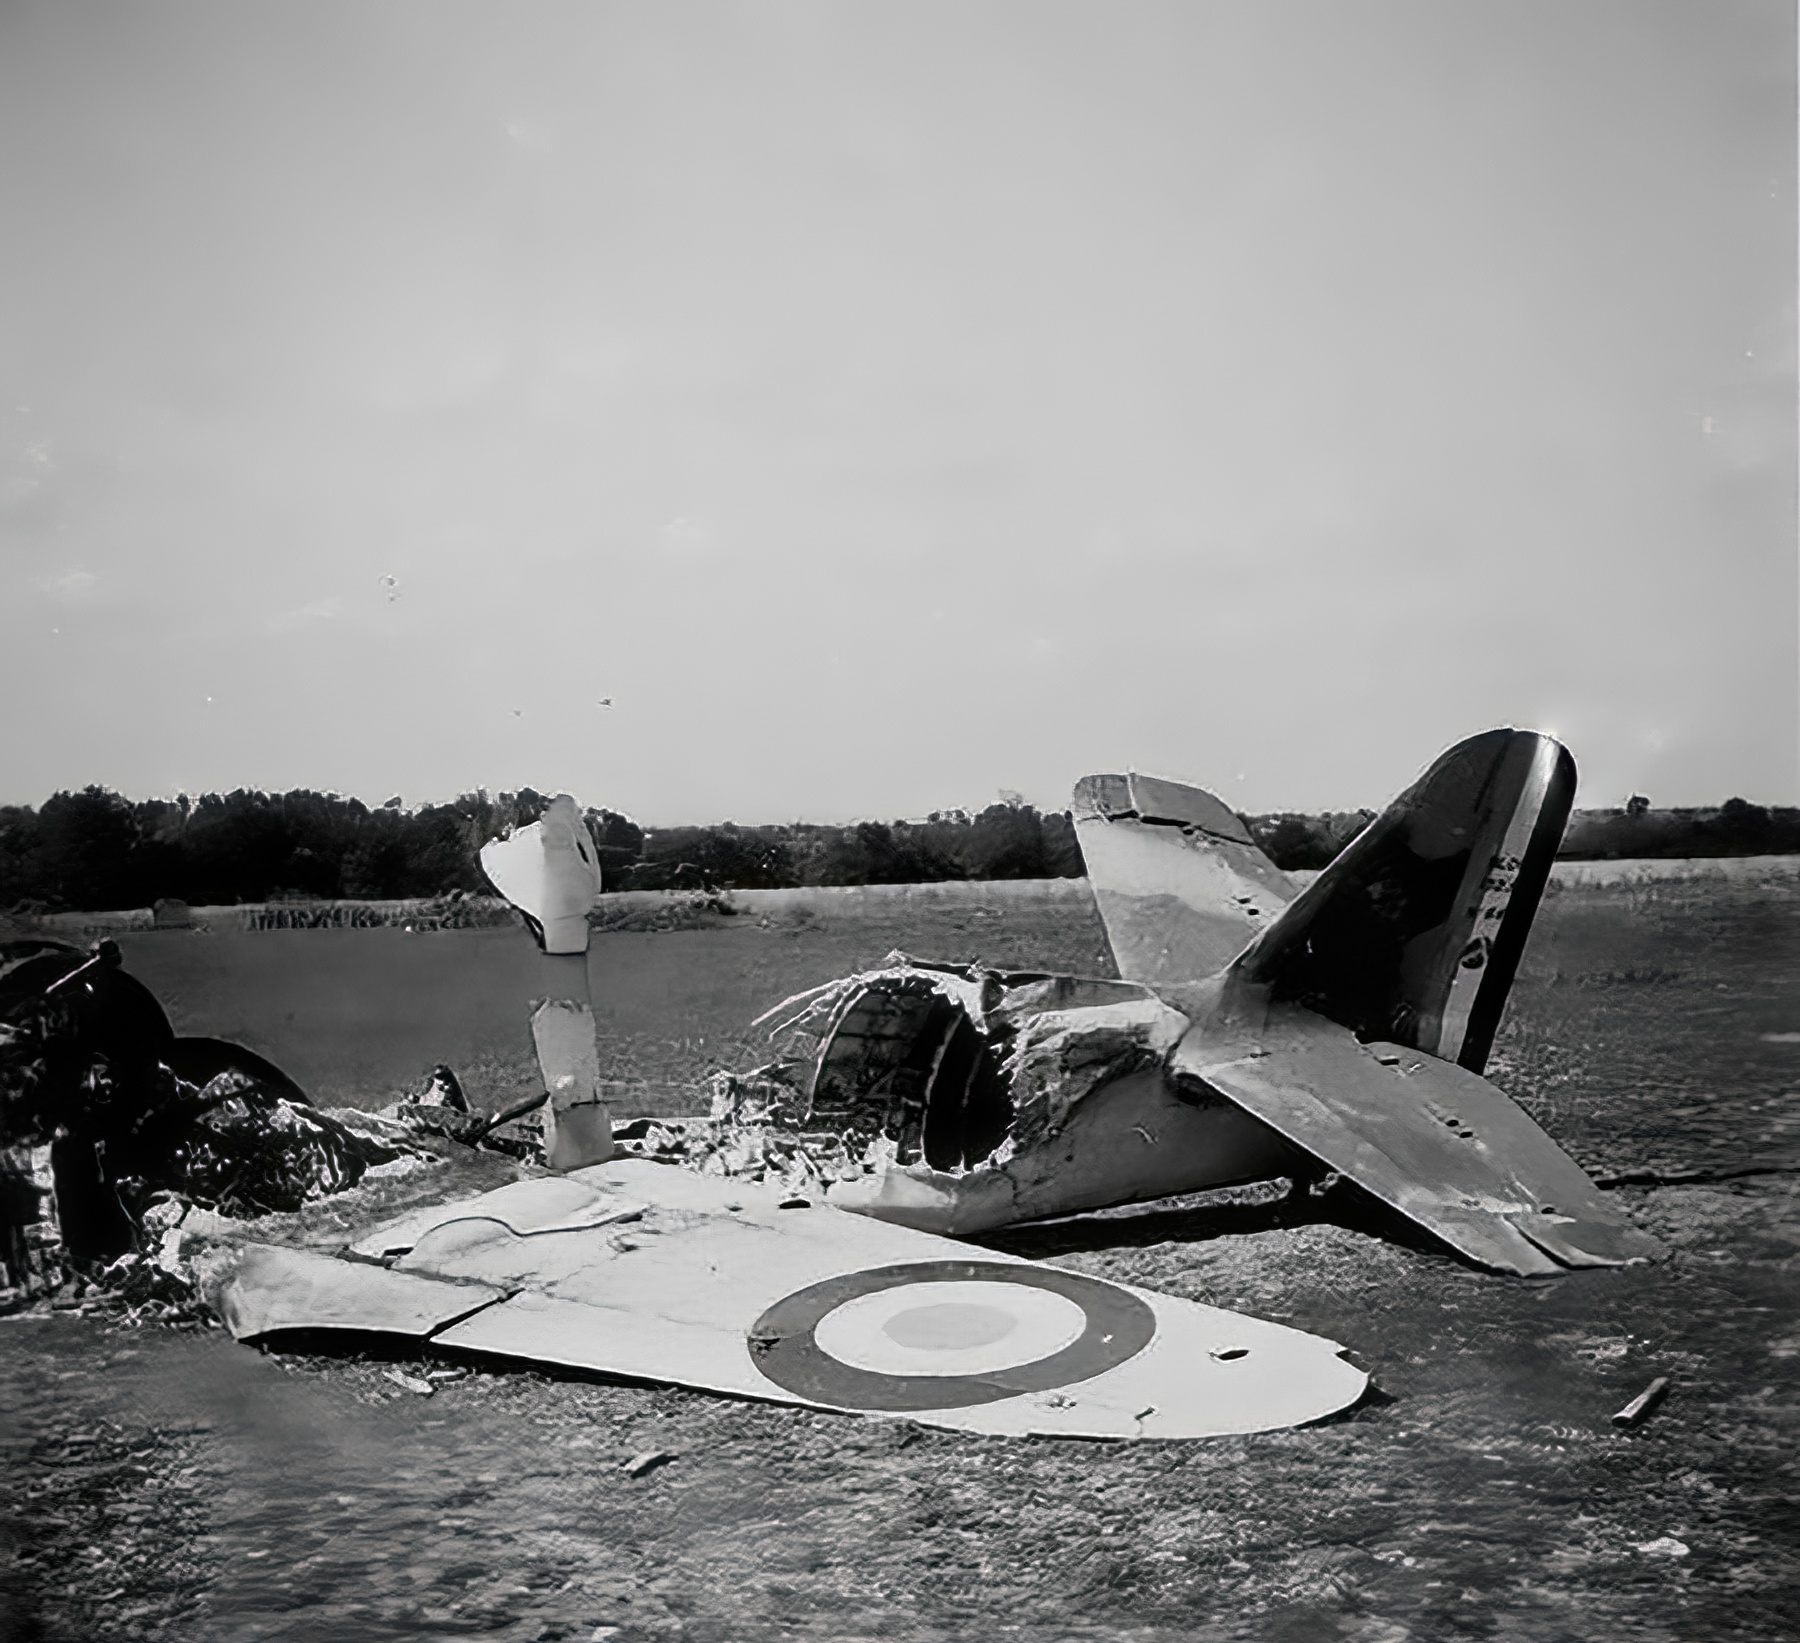 French Airforce Bloch MB 152C1 destroyed during the battle of France May Jun 1940 ebay 01